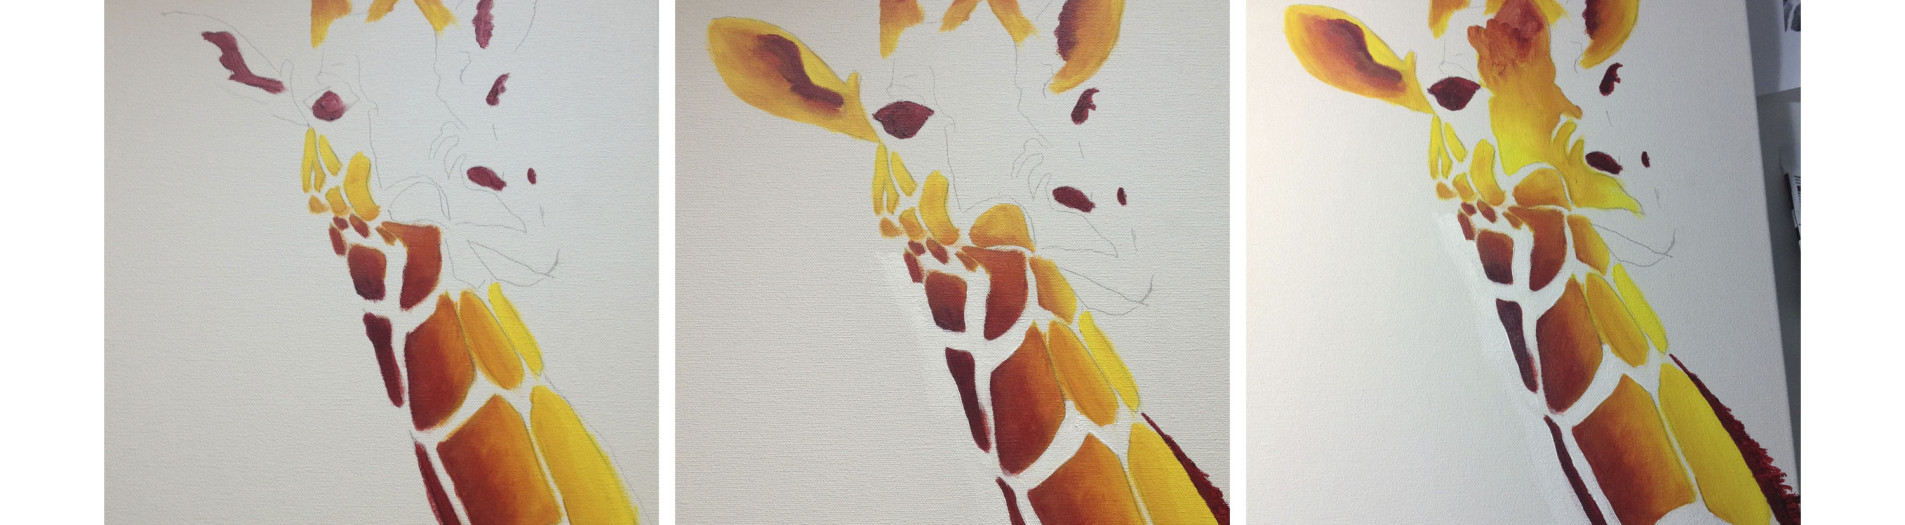 Giraffe Painting - Step by Step